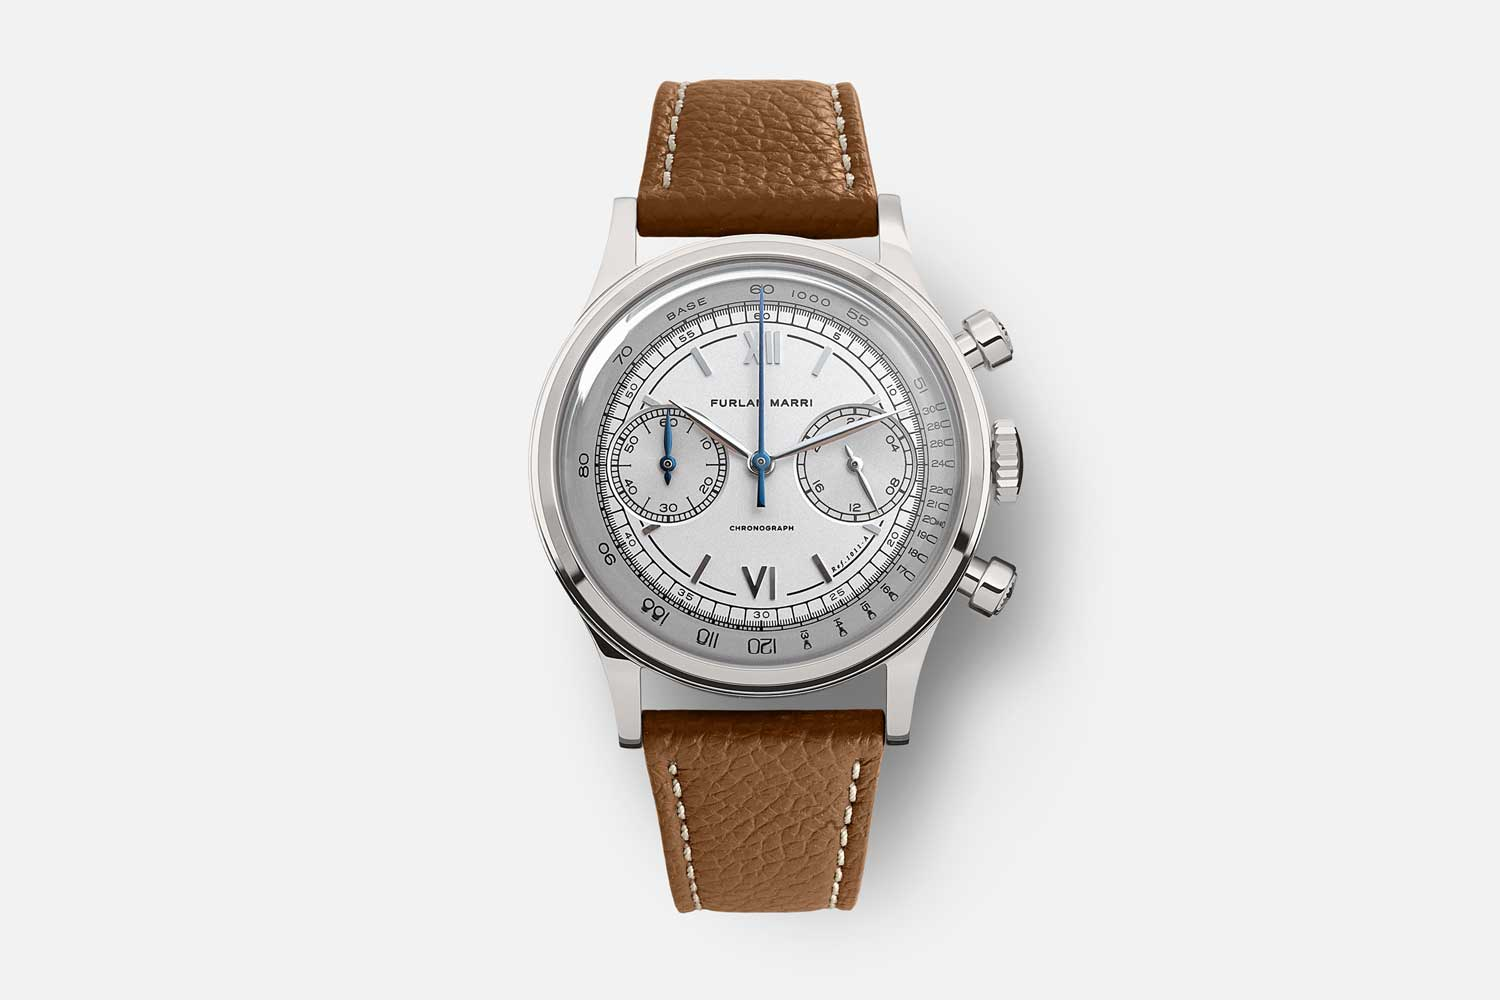 """The 38mm Furlan Marri Ref. 1011-A """"Tasti Tondi"""" with a creamy two tone dial and tempered steel blued hands"""